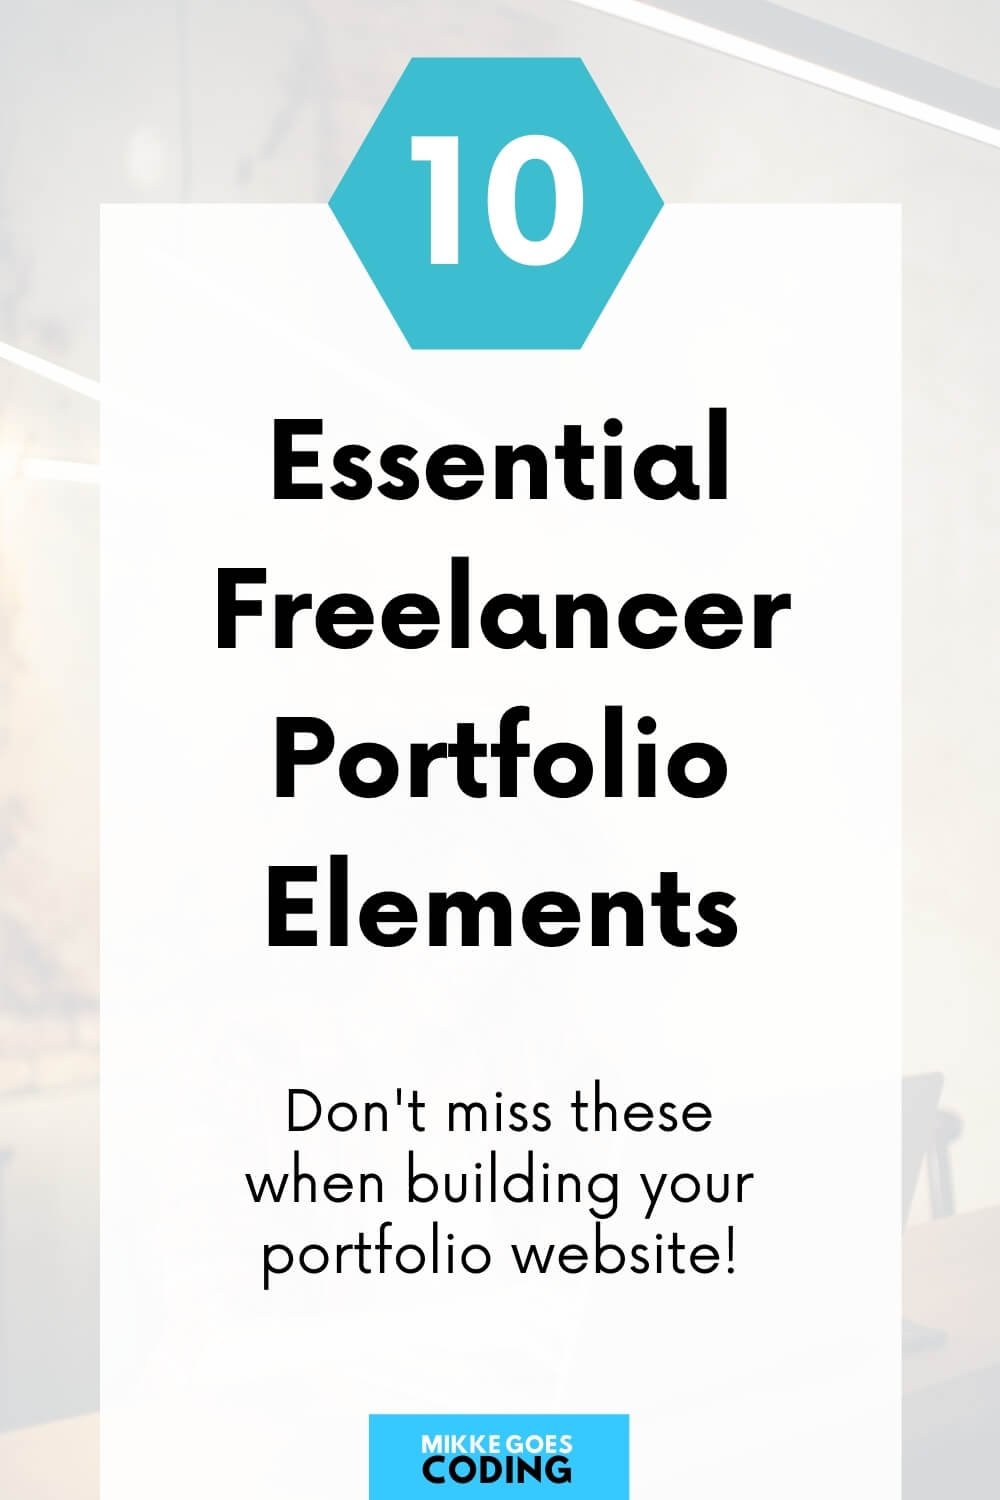 10 Things to Include in Your Freelance Portfolio Website in 2021